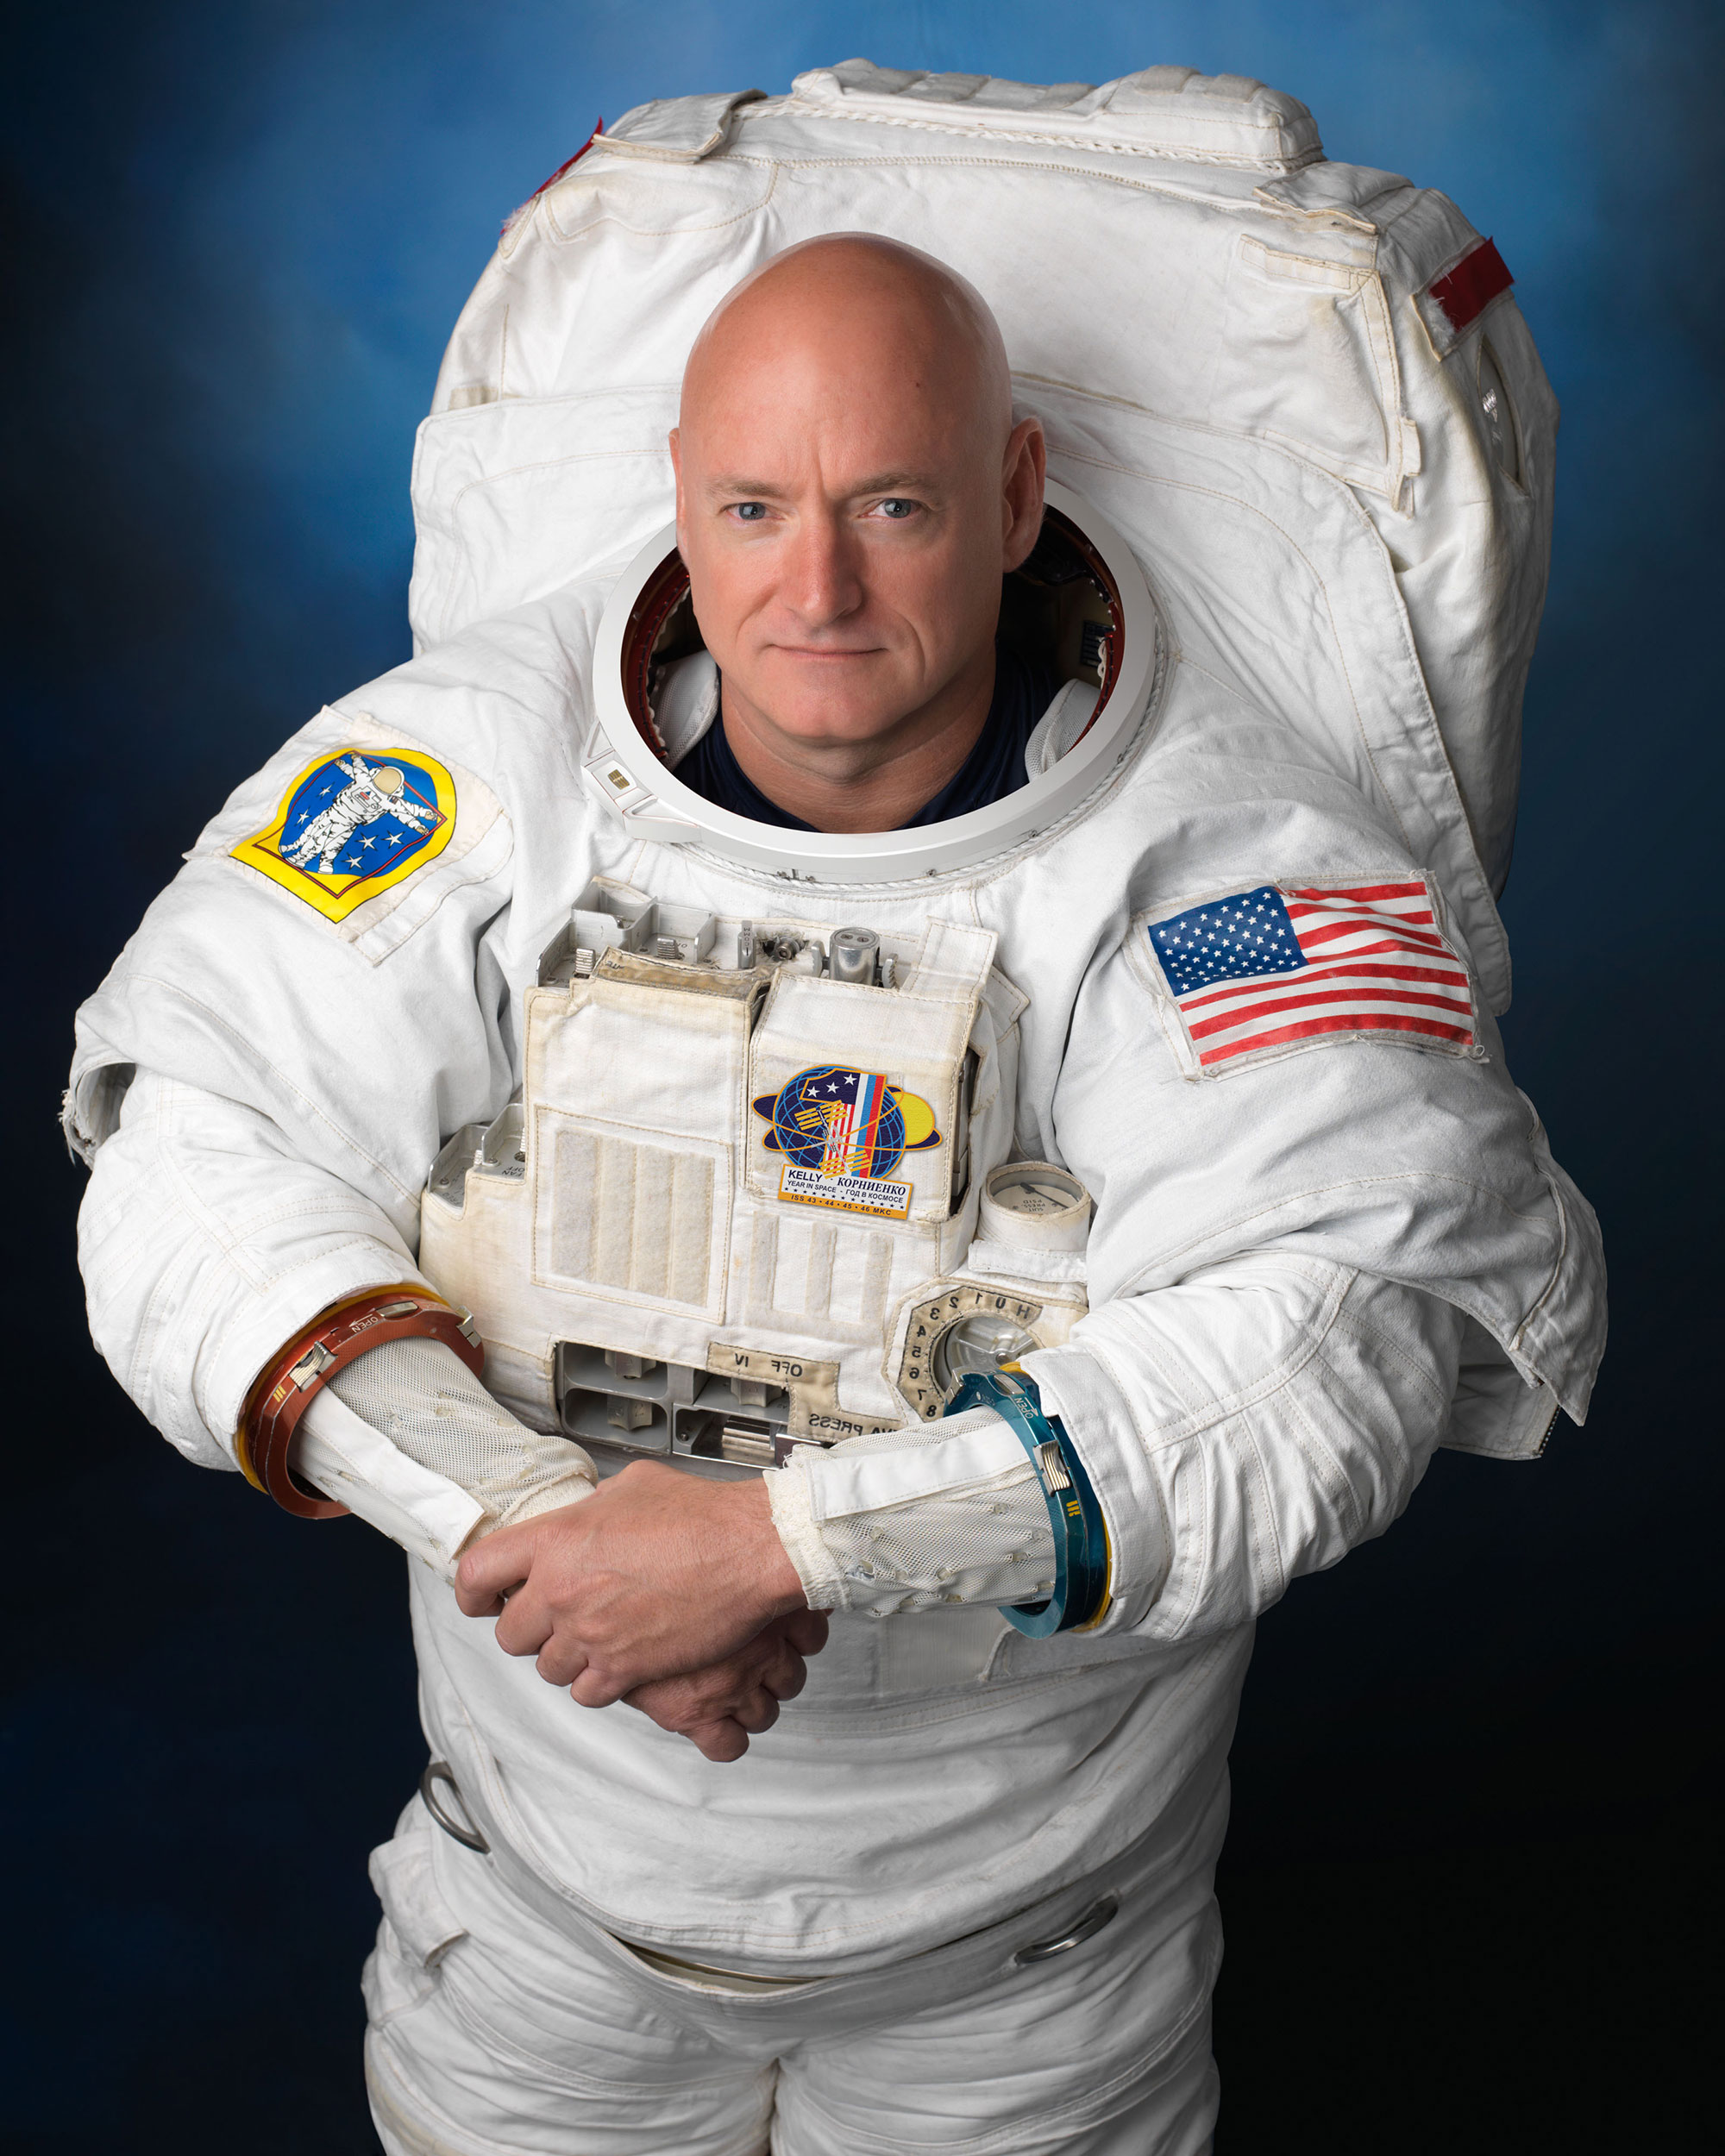 NASA astronaut Scott Kelly, wearing an Extravehicular Mobility Unit (EMU) spacesuit. Credit: NASA/Robert Markowitz